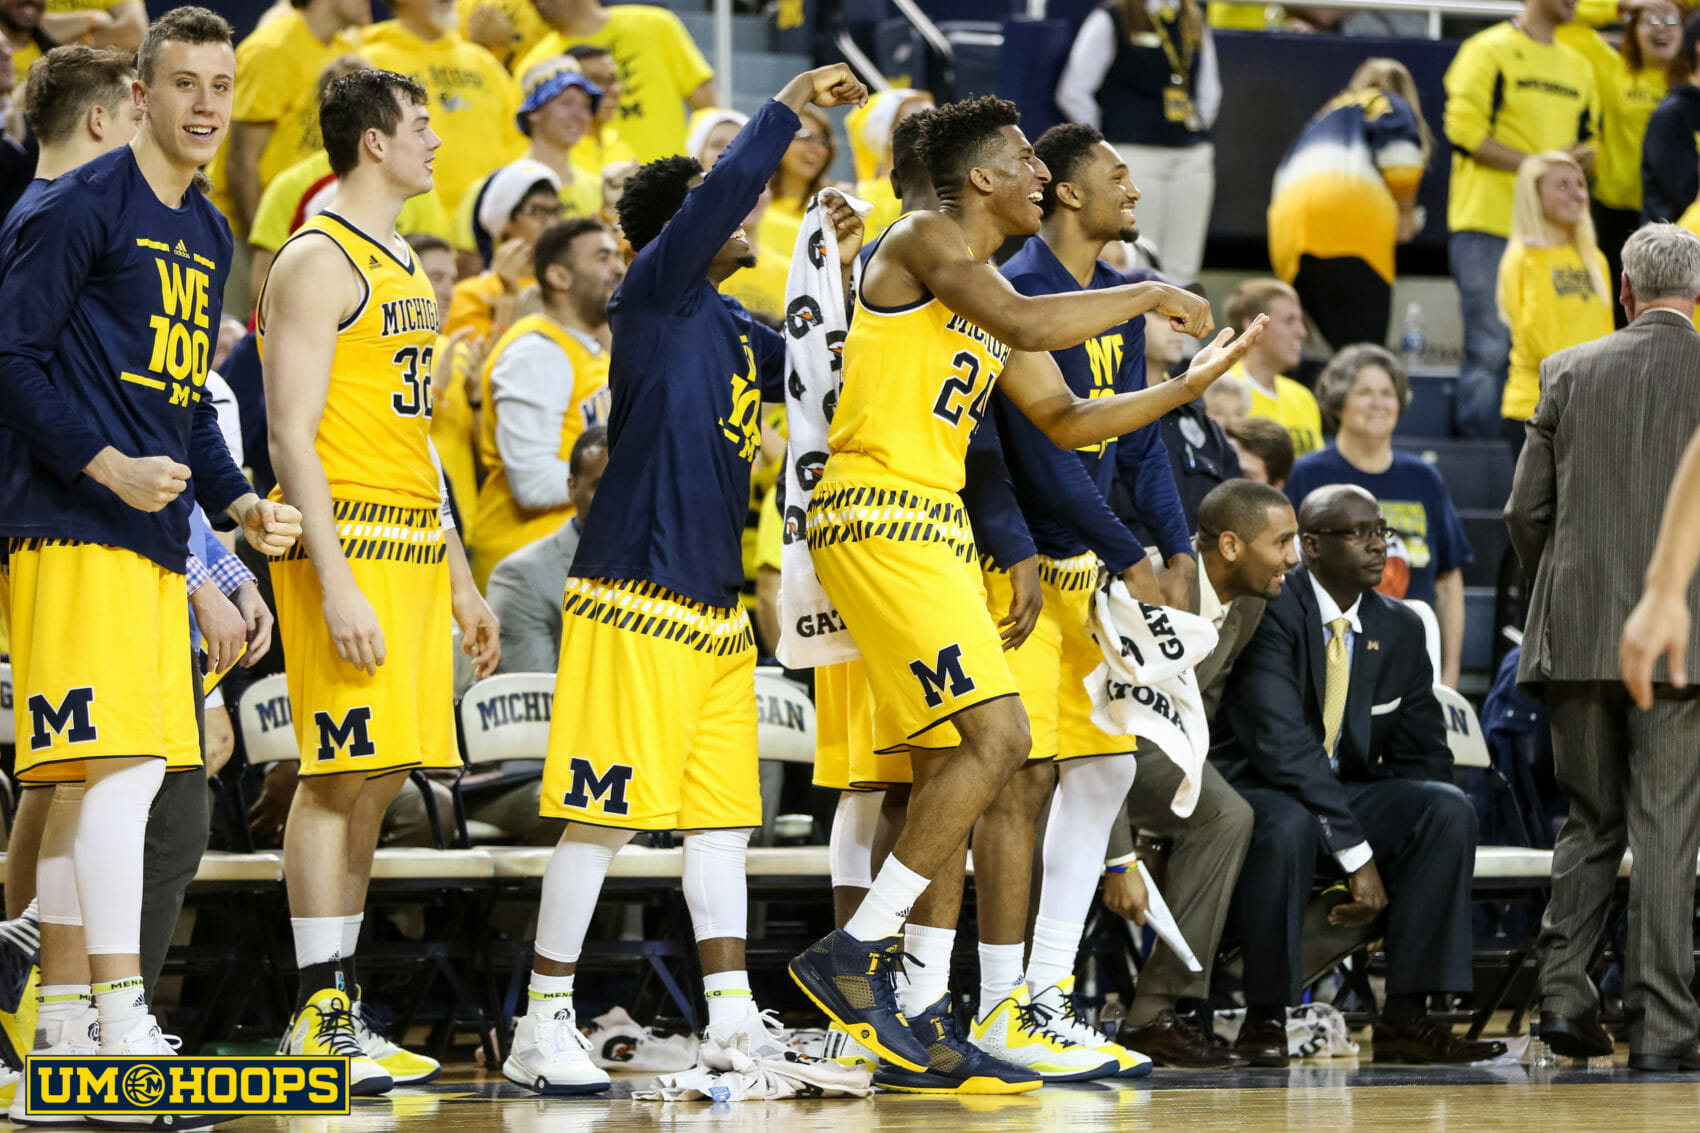 Michigan 96, Bryant 60-30